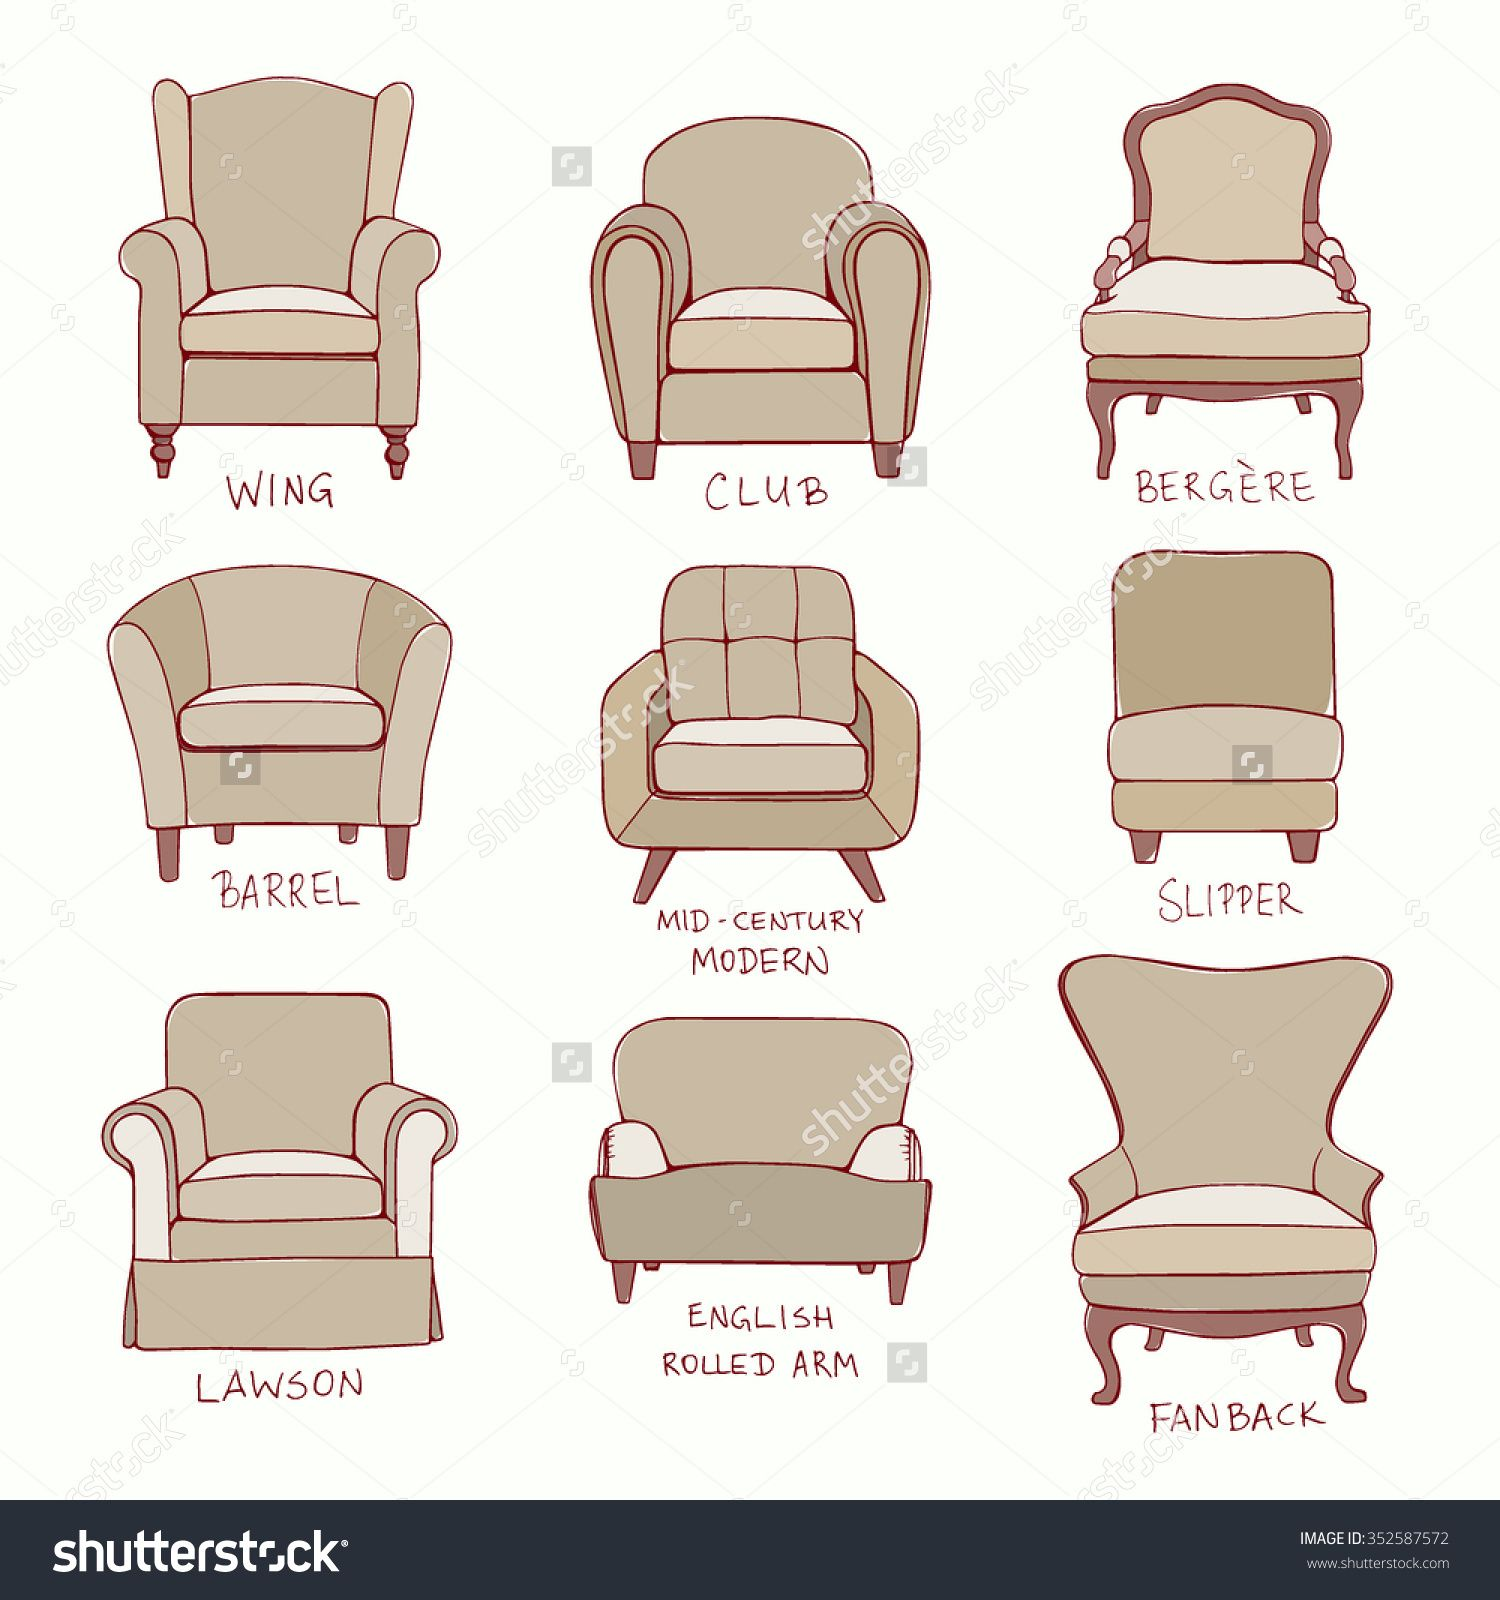 armchair styles table and chairs armchairs edwardian antique throne chair howard sofa cell phone holder designer swivel eames sessel dining comfy accent toddler booster seat for